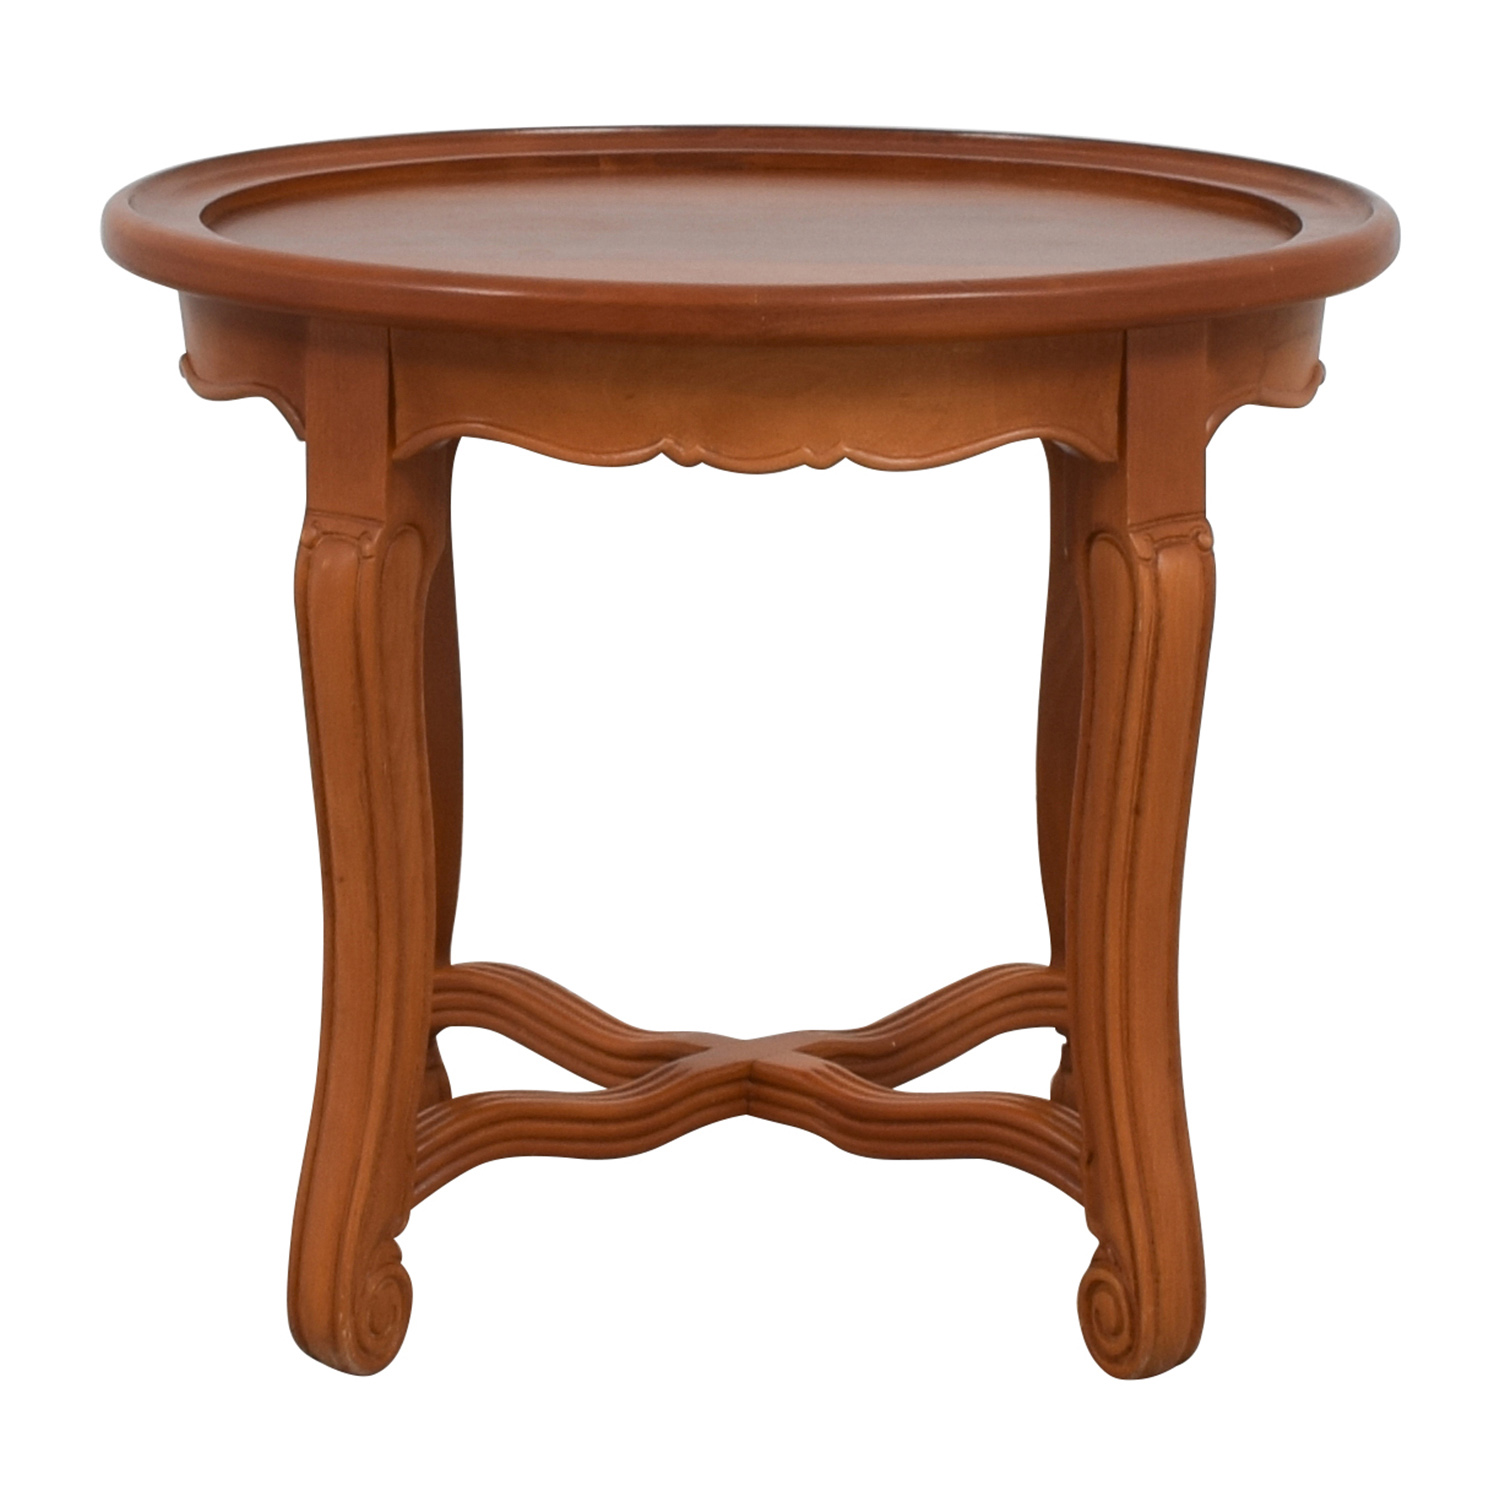 Round Antique Wood Side Table for sale